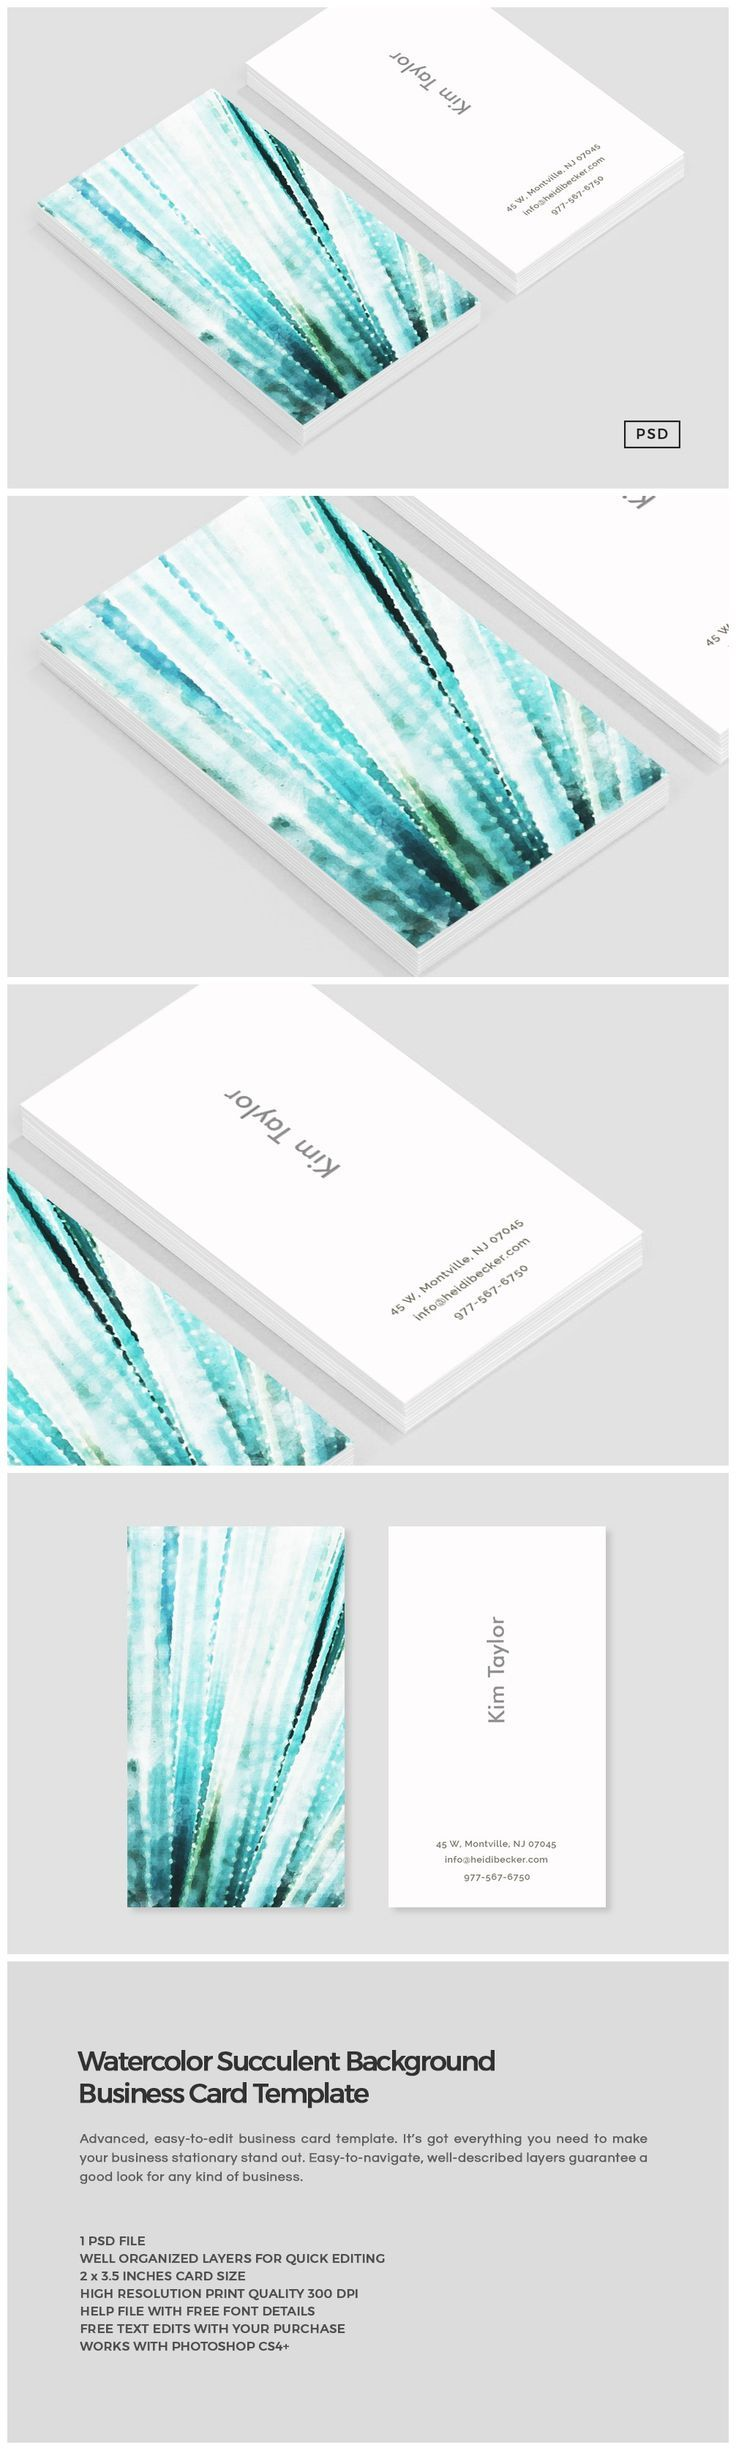 109 best Creative Business Cards images on Pinterest | Logos ...